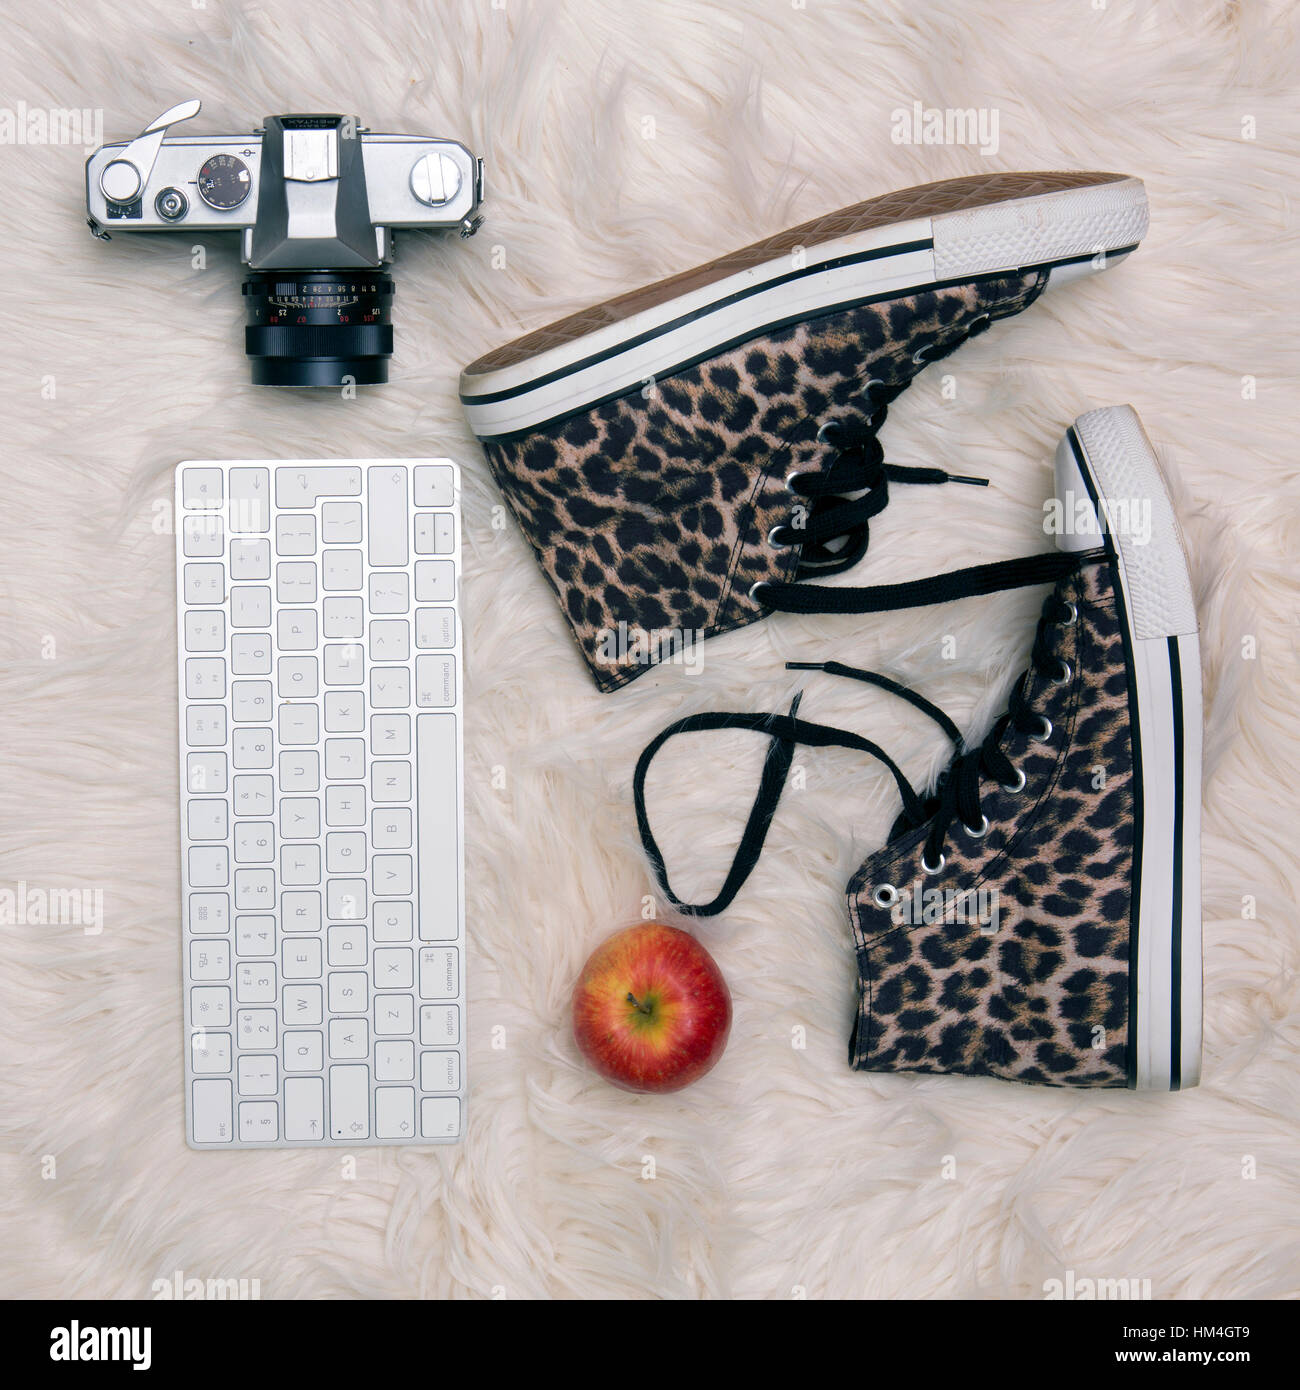 Lifestyle Flat Lay with leopard print boots old camera keyboard and apple on a fur rug - Stock Image